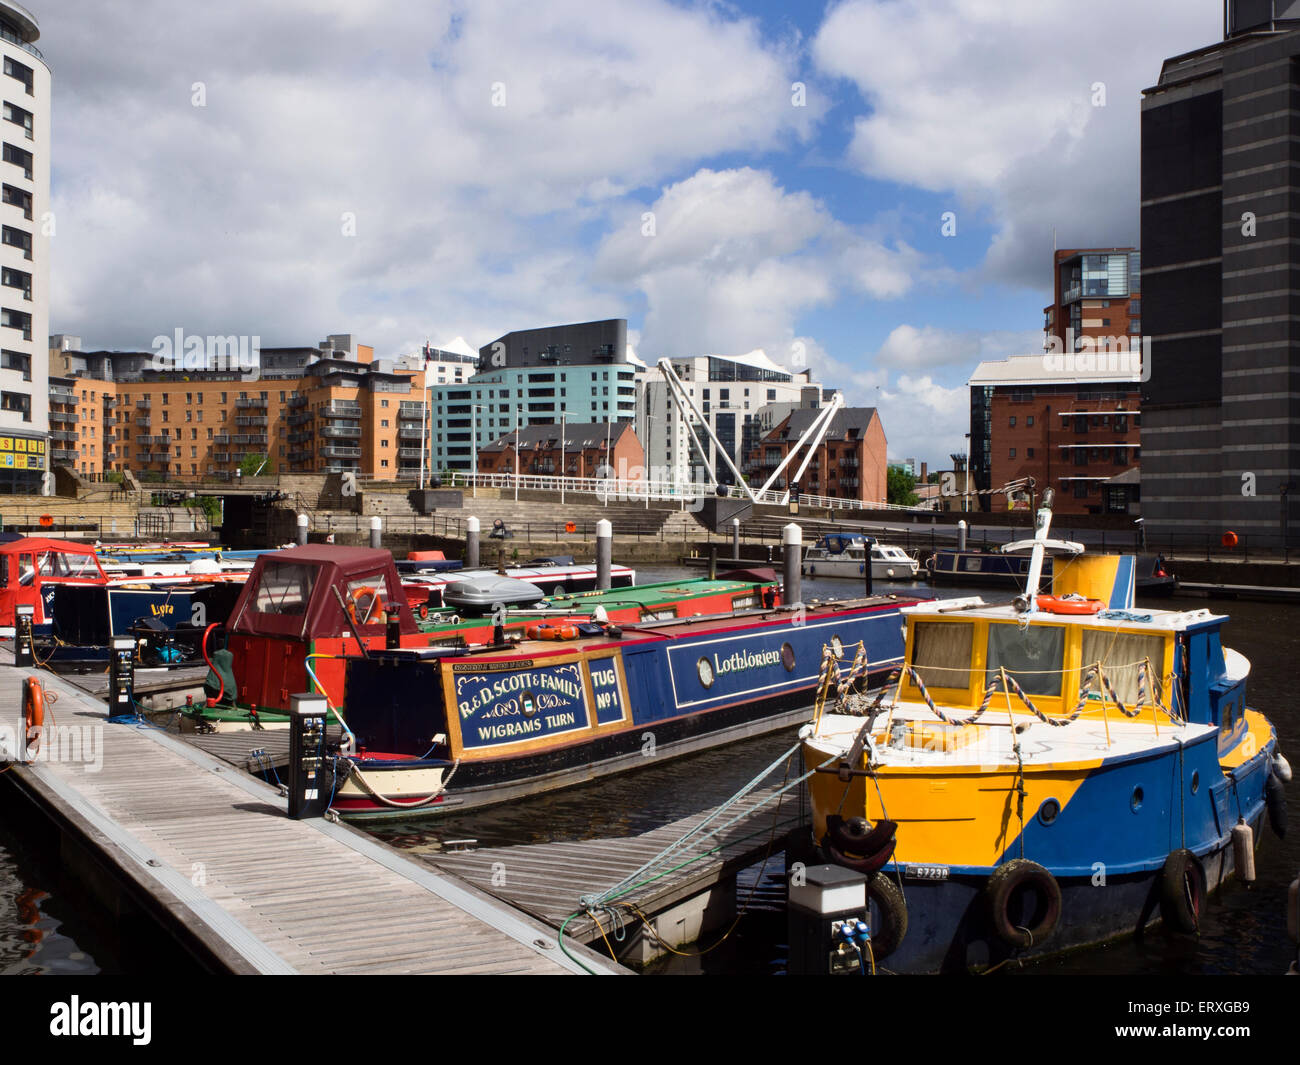 Narrowboats Moored at Clarence Dock in Leeds West Yorkshire England - Stock Image